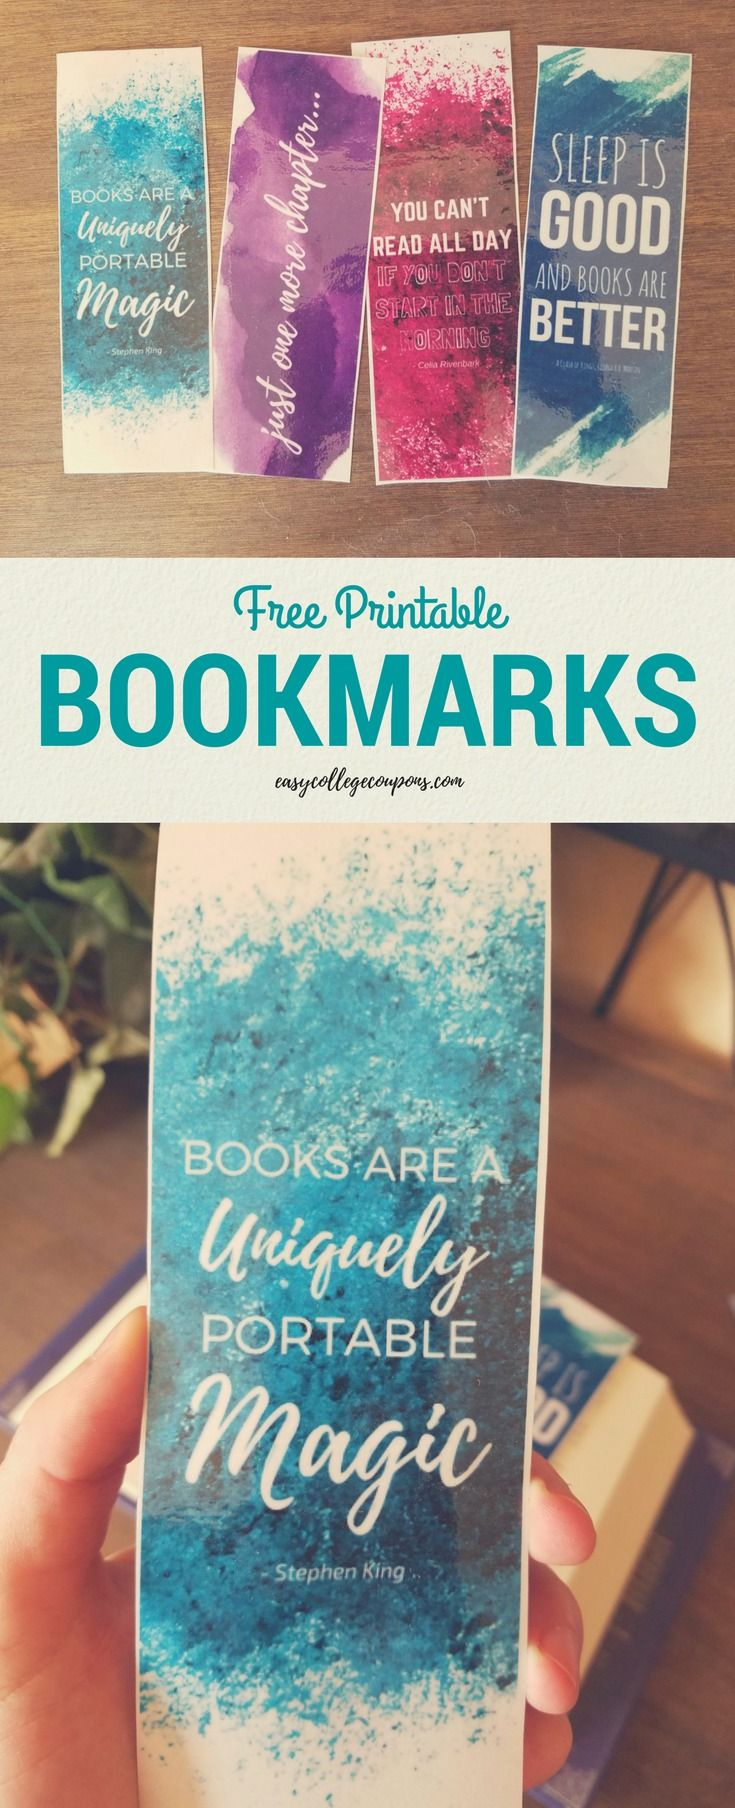 Watercolor books for kids - Free Printable Bookmarks With Quotes About Reading